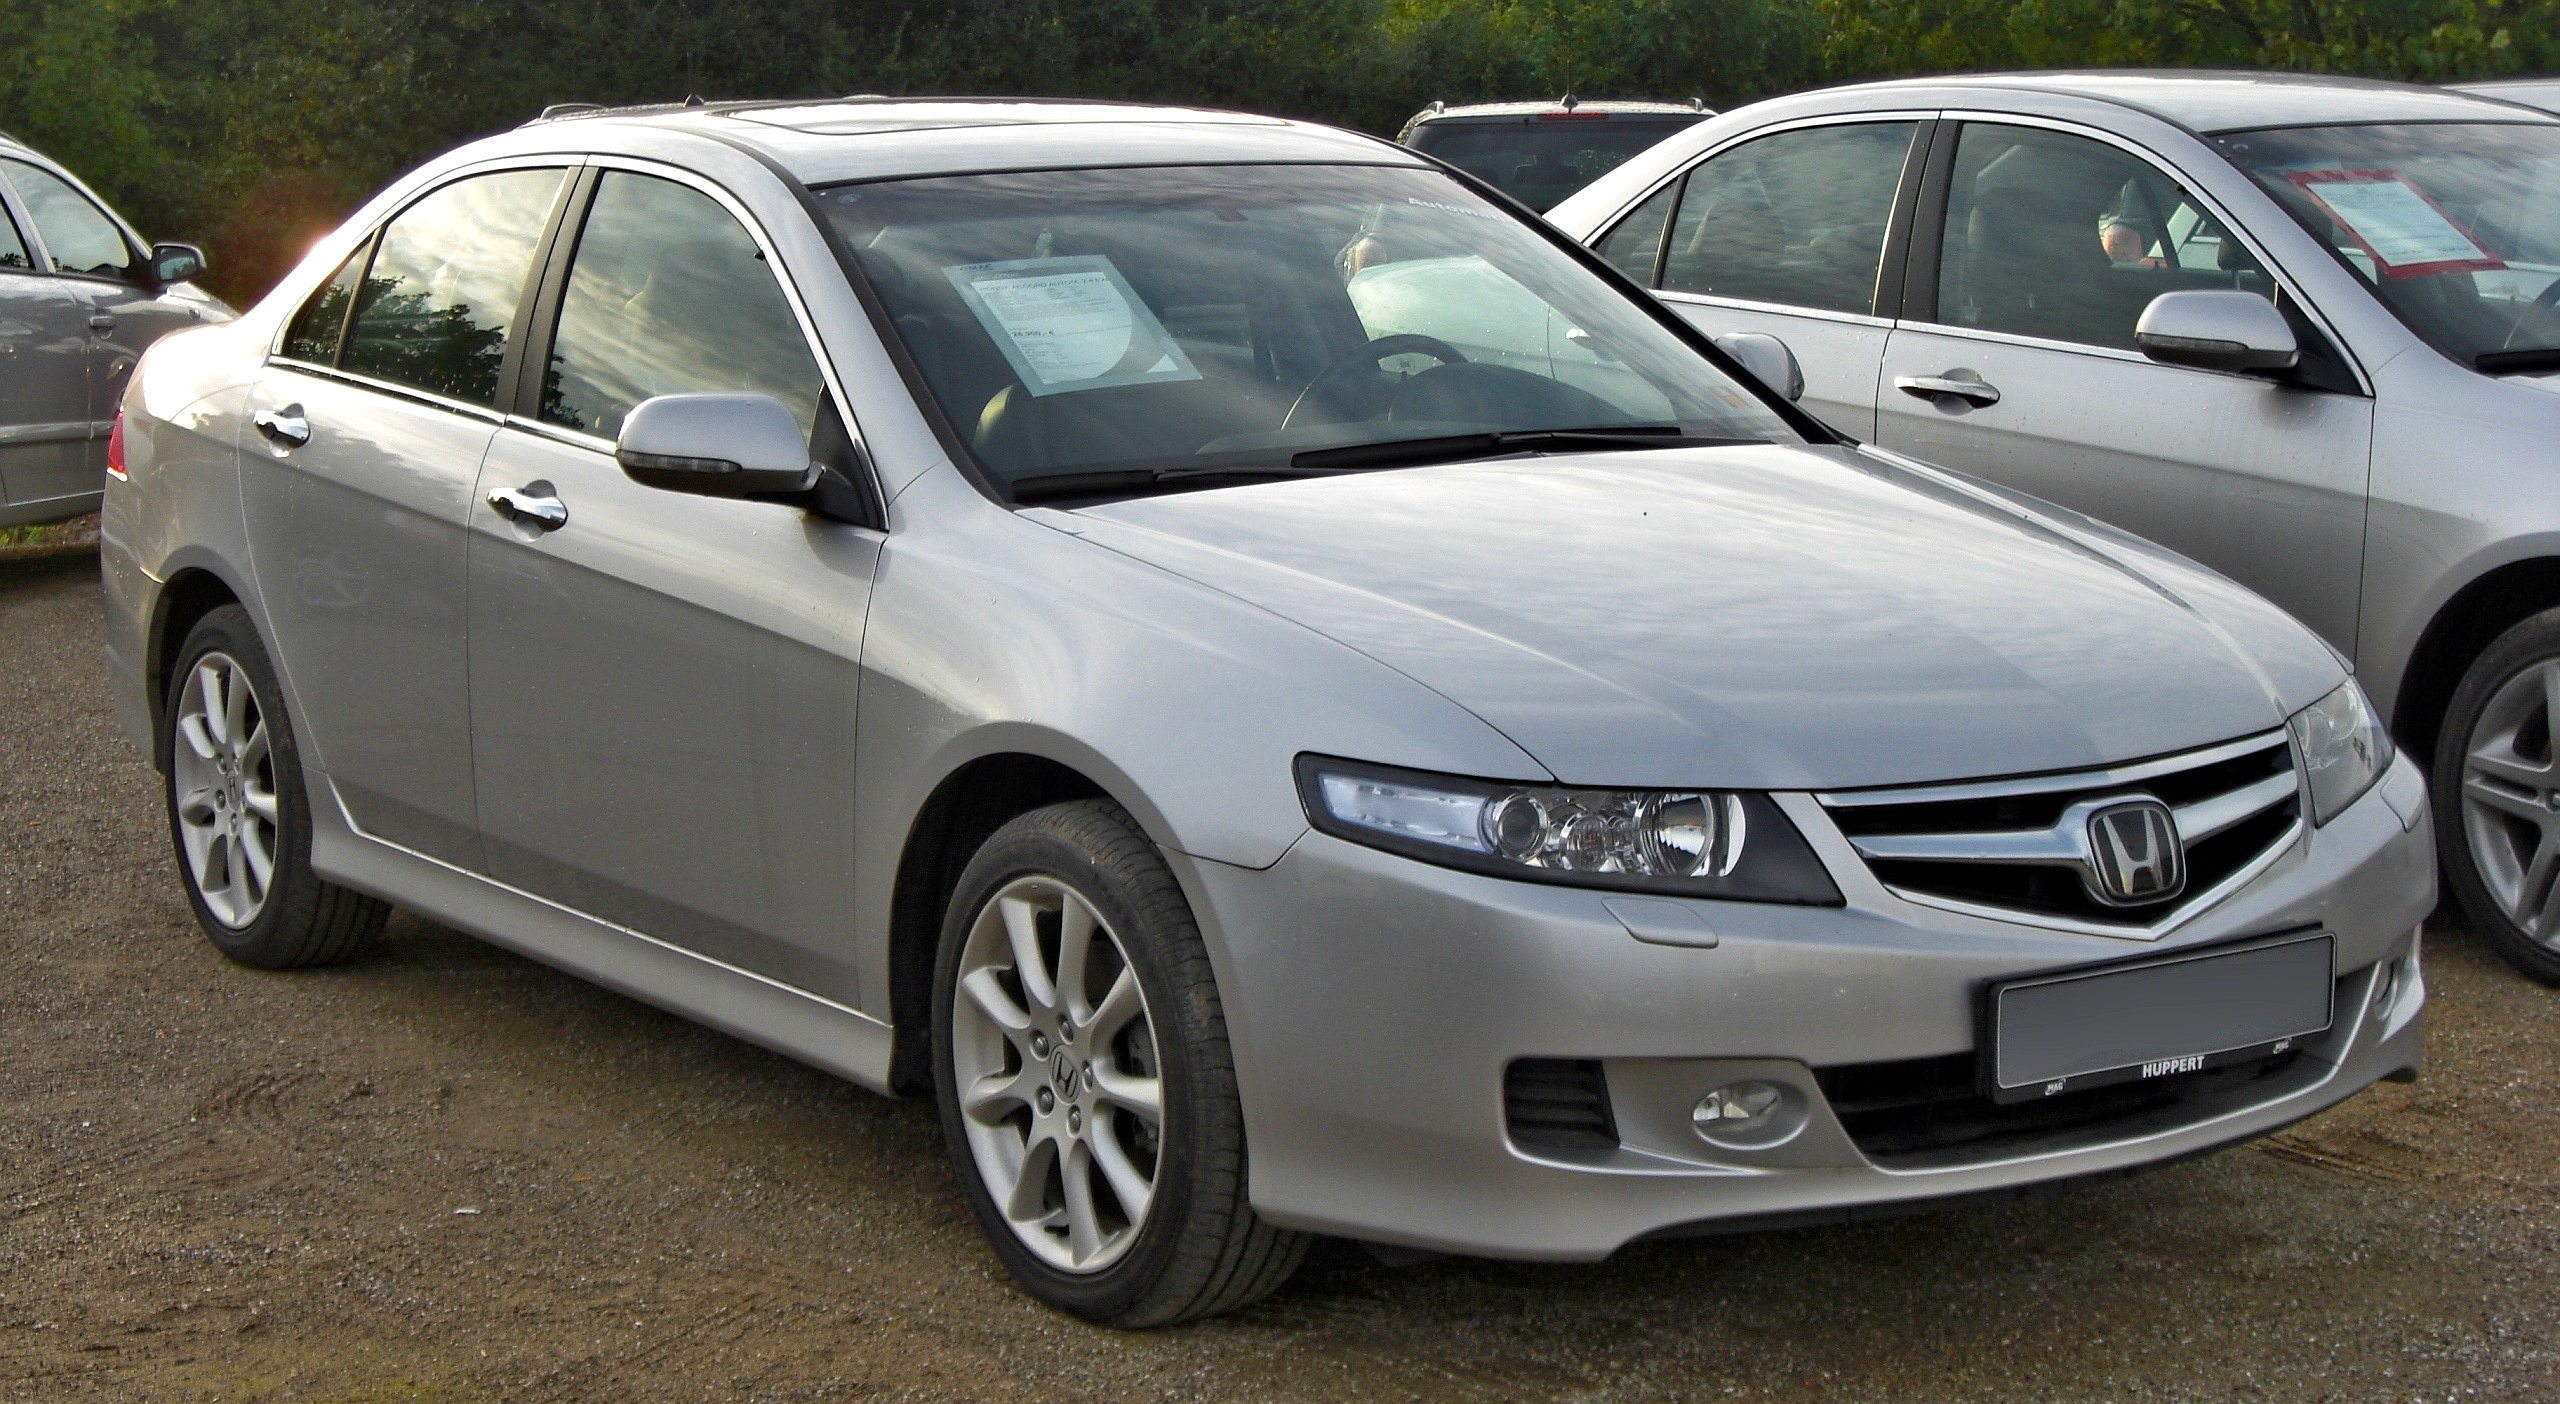 Pictures of honda accord vii 2002 #3